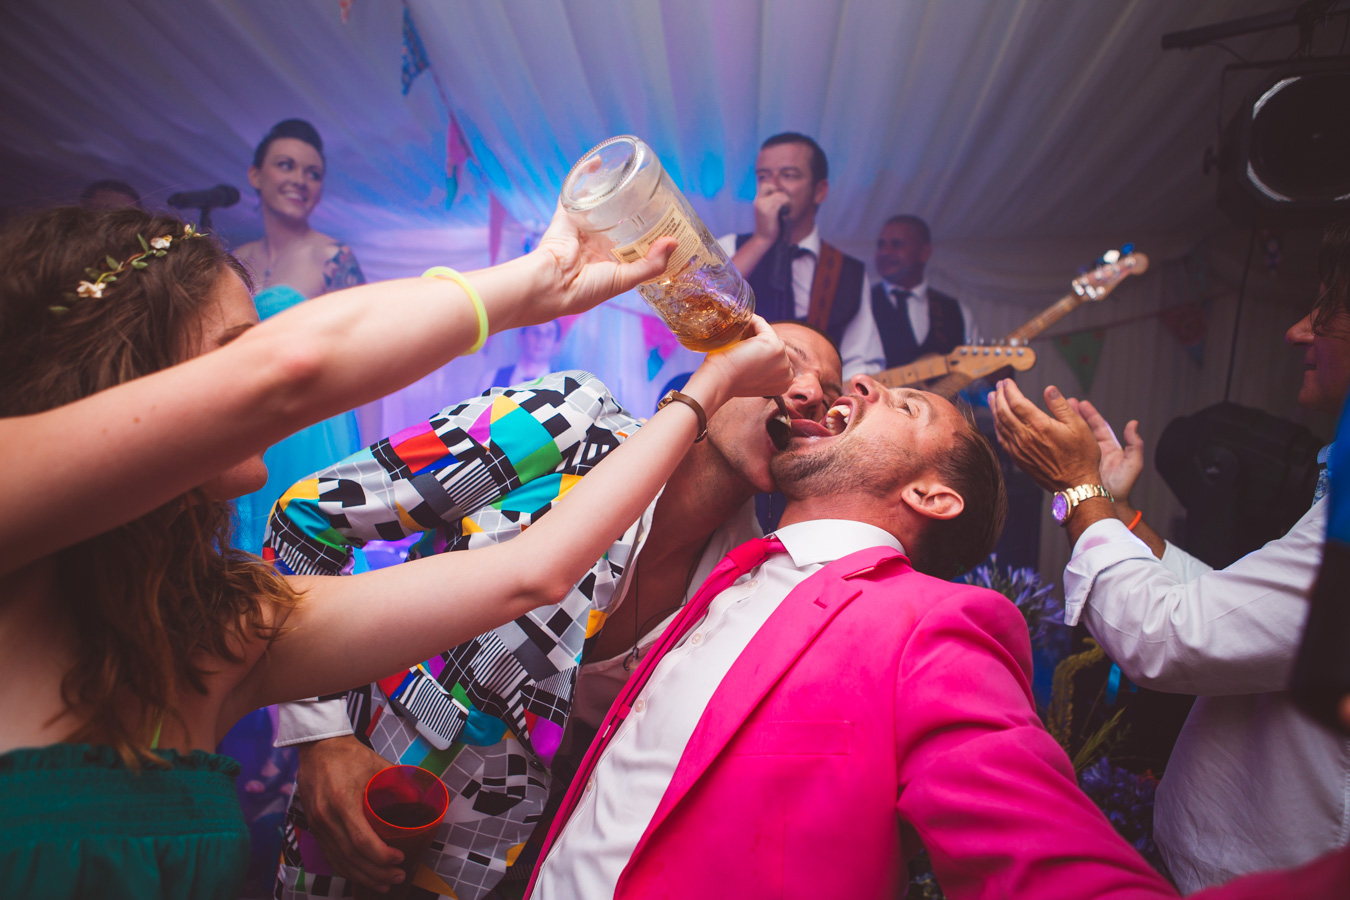 One of a set of images taken at this Destination Wedding of Jo and Steve, Jersey The Channel islands. Wedding party drinking in pink and checkered opposuits.Photography By Matt Porteous & Max Burnett.